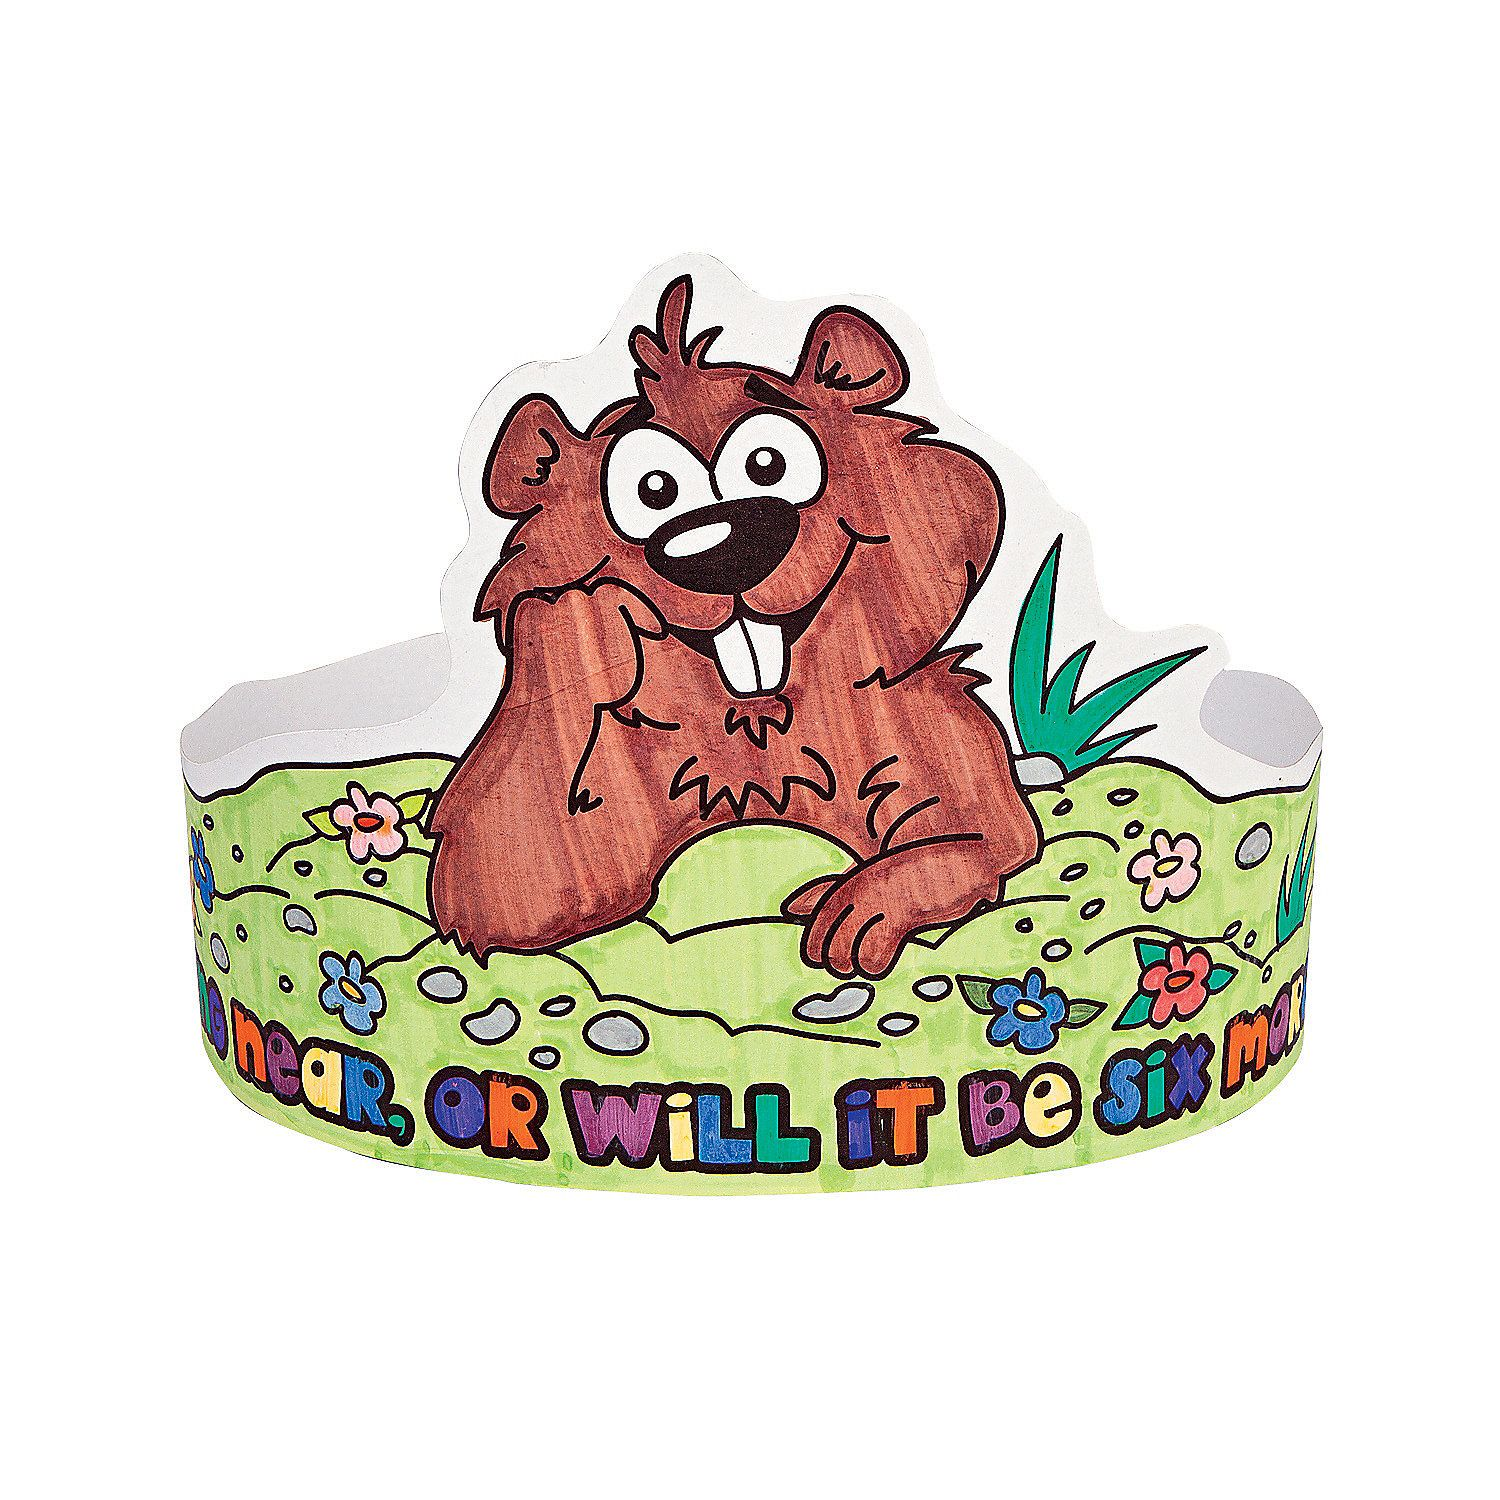 12 Color Your Own Groundhog Day Crowns